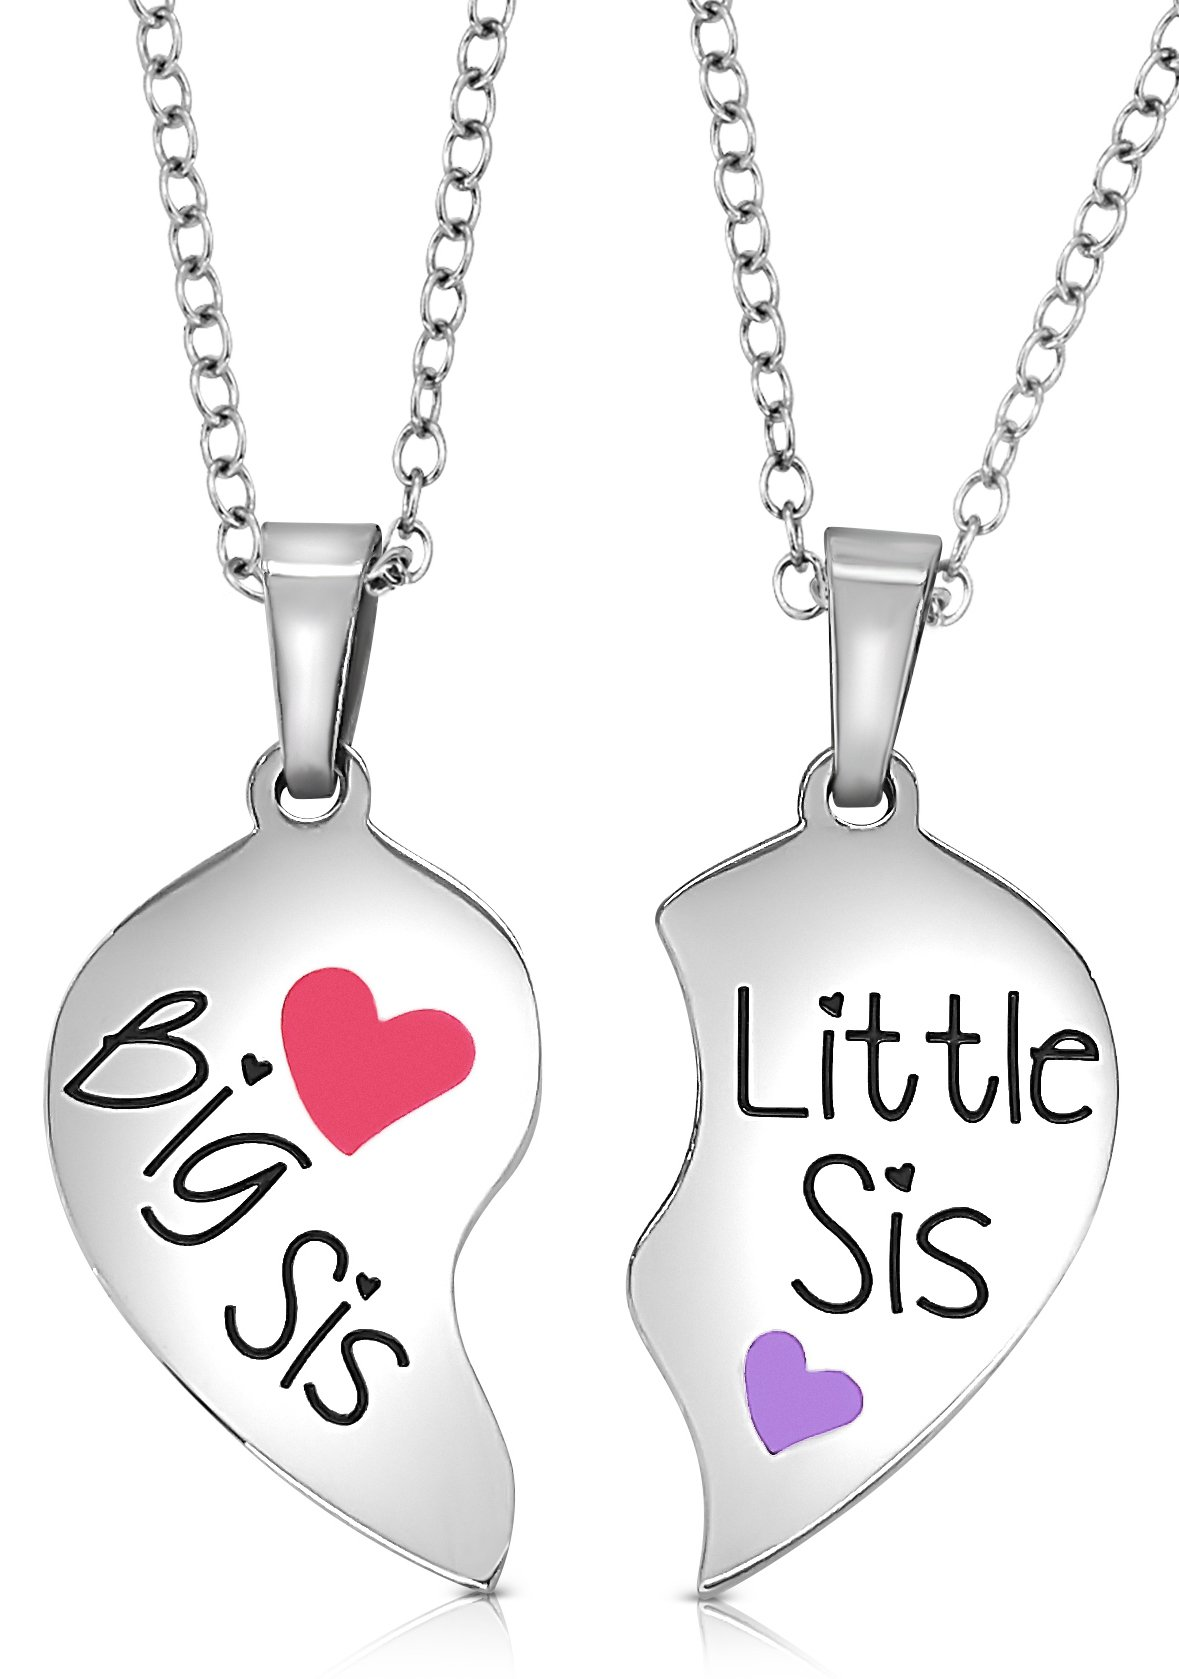 Big Sis Lil Little Sis Necklace for 2 Heart Halves Matching Sisters Jewelry Gift Set Best Friends - Sister Necklaces for 2 (Big Sis Pink - Little Sis Purple)